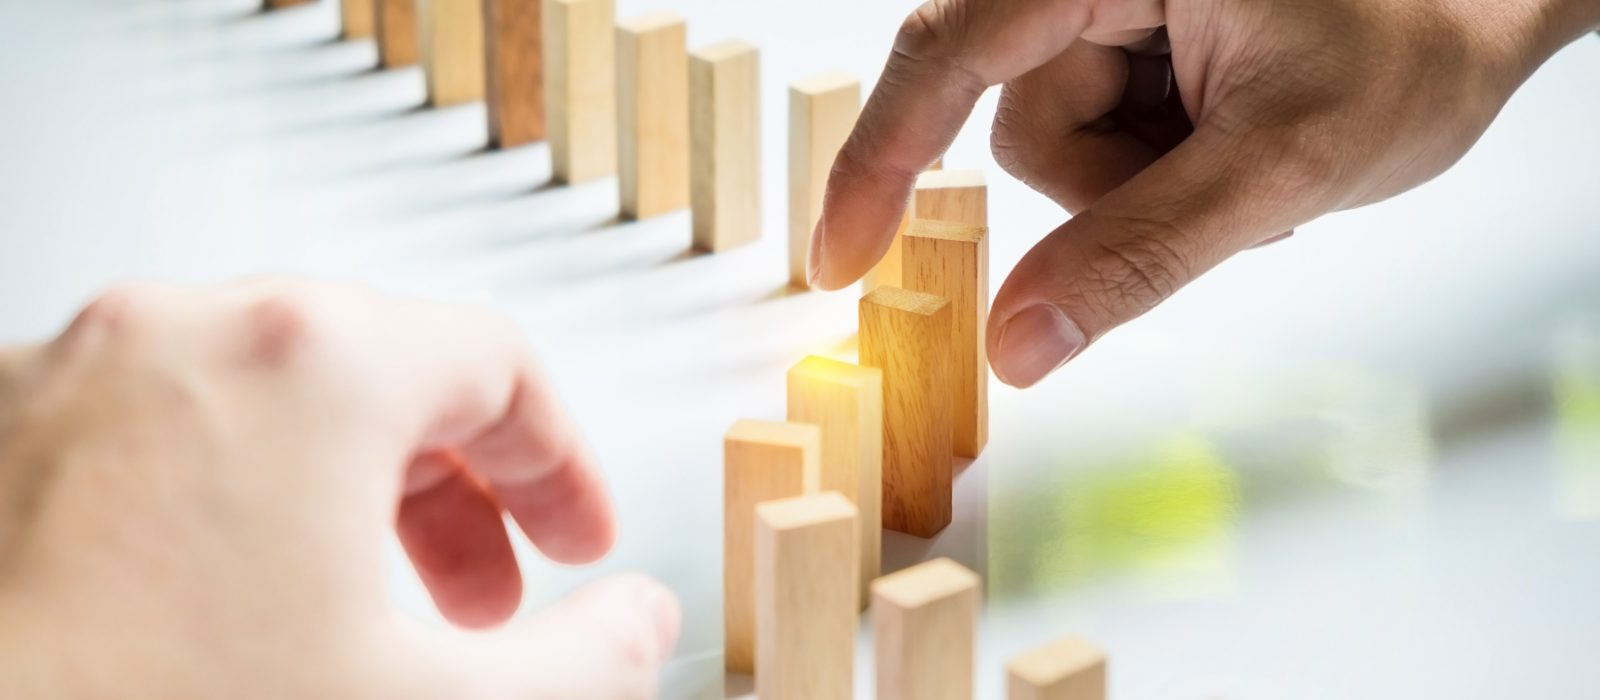 Place a wooden block lines Business team solving a problem.